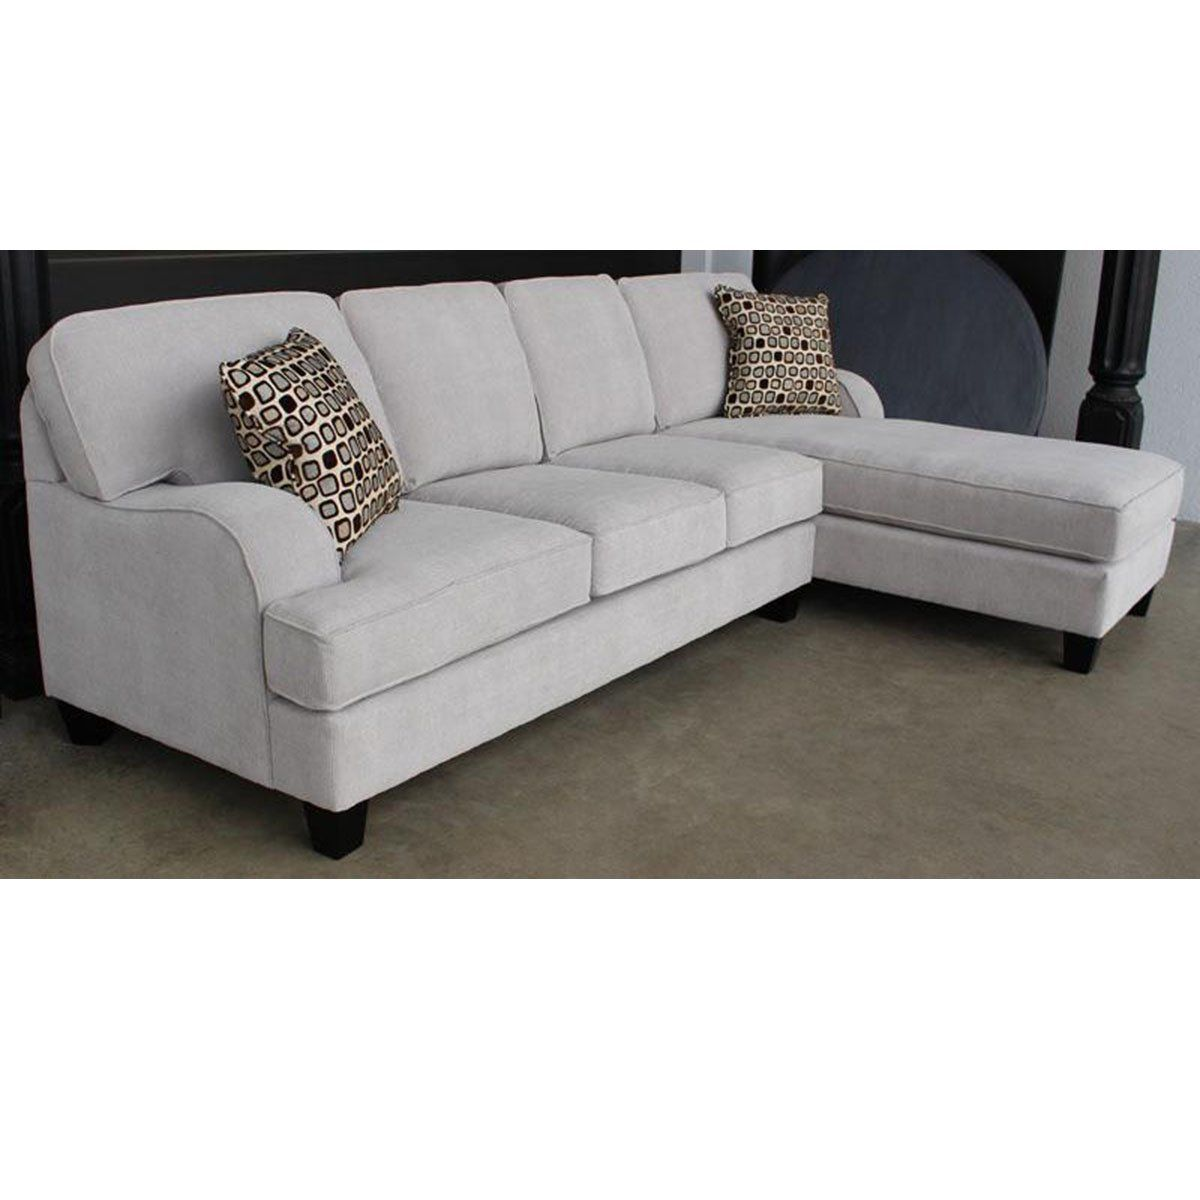 Philly 2 Piece Sofa Chaise Sectional - Made in Canada | Sofas | Showhome Furniture